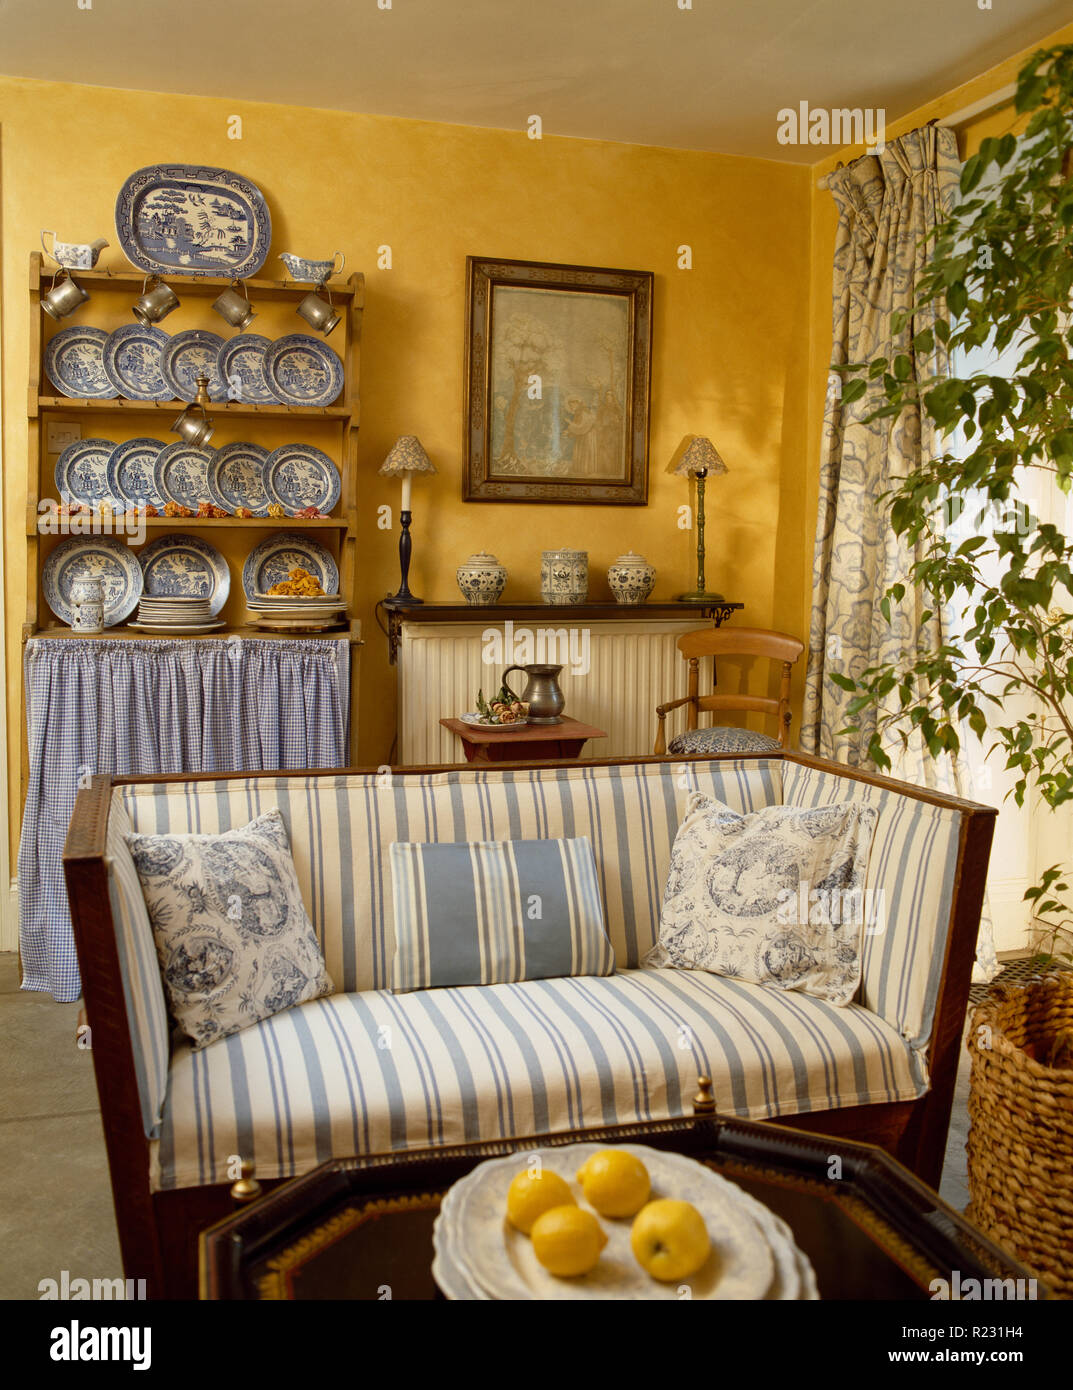 Marvelous Small Blue Striped Sofa In Yellow Sitting Room Stock Photo Alphanode Cool Chair Designs And Ideas Alphanodeonline